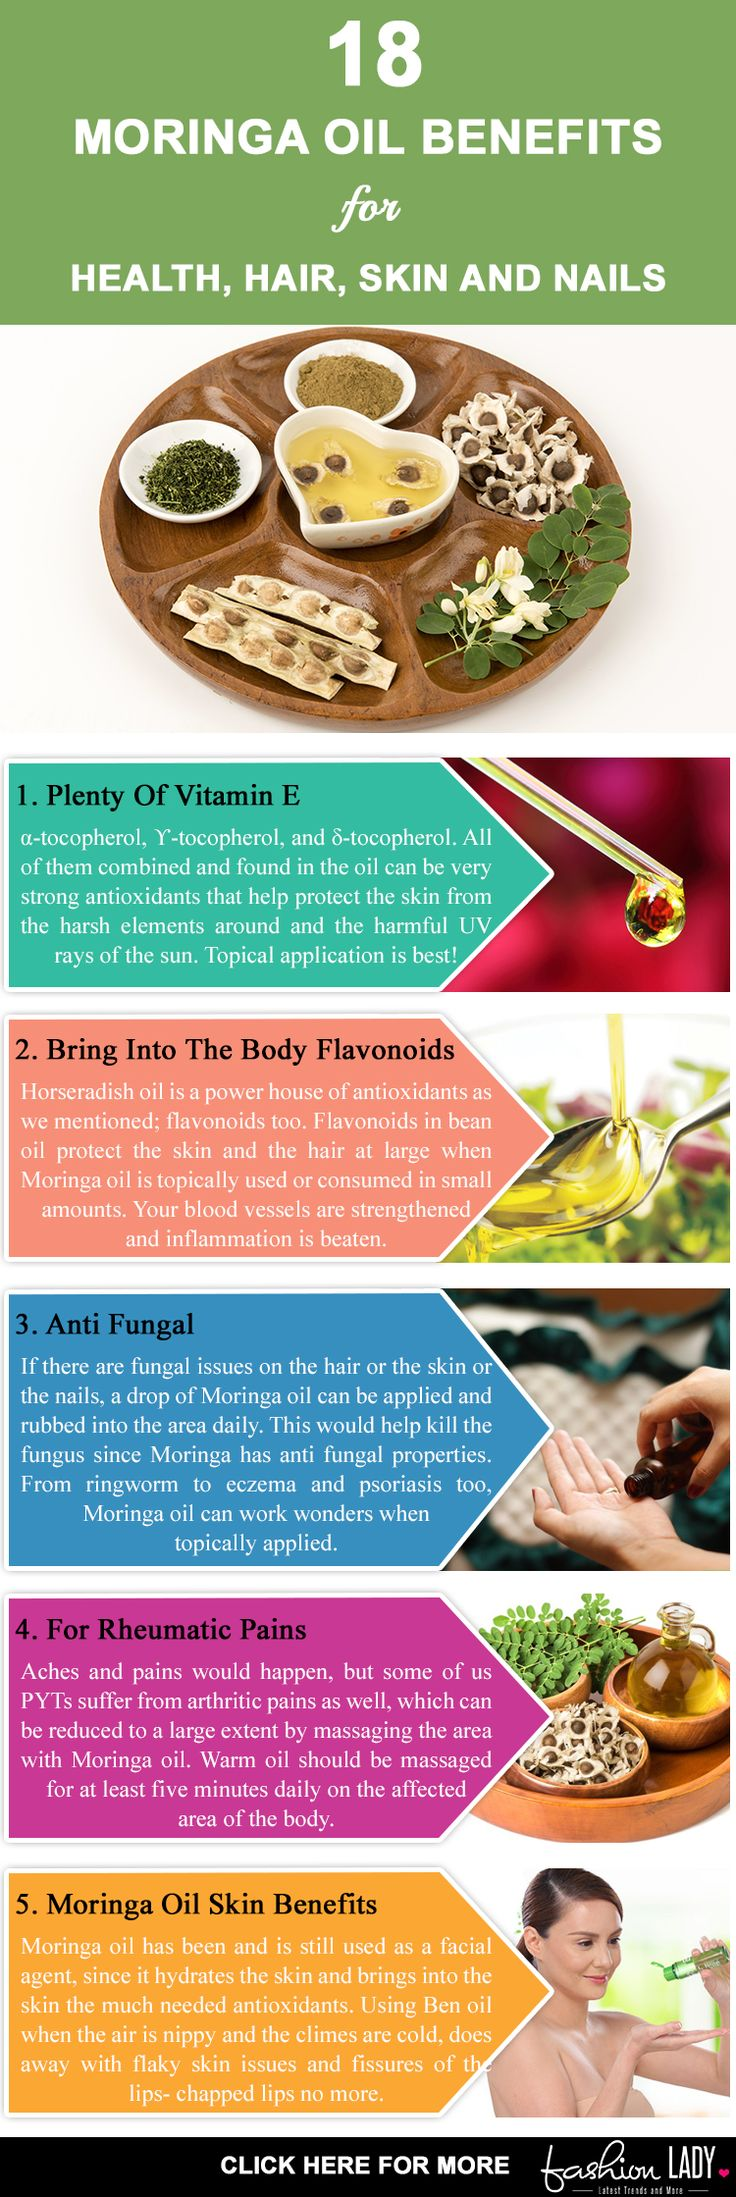 18 Moringa Oil Benefits For Health, Hair, Skin And Nails